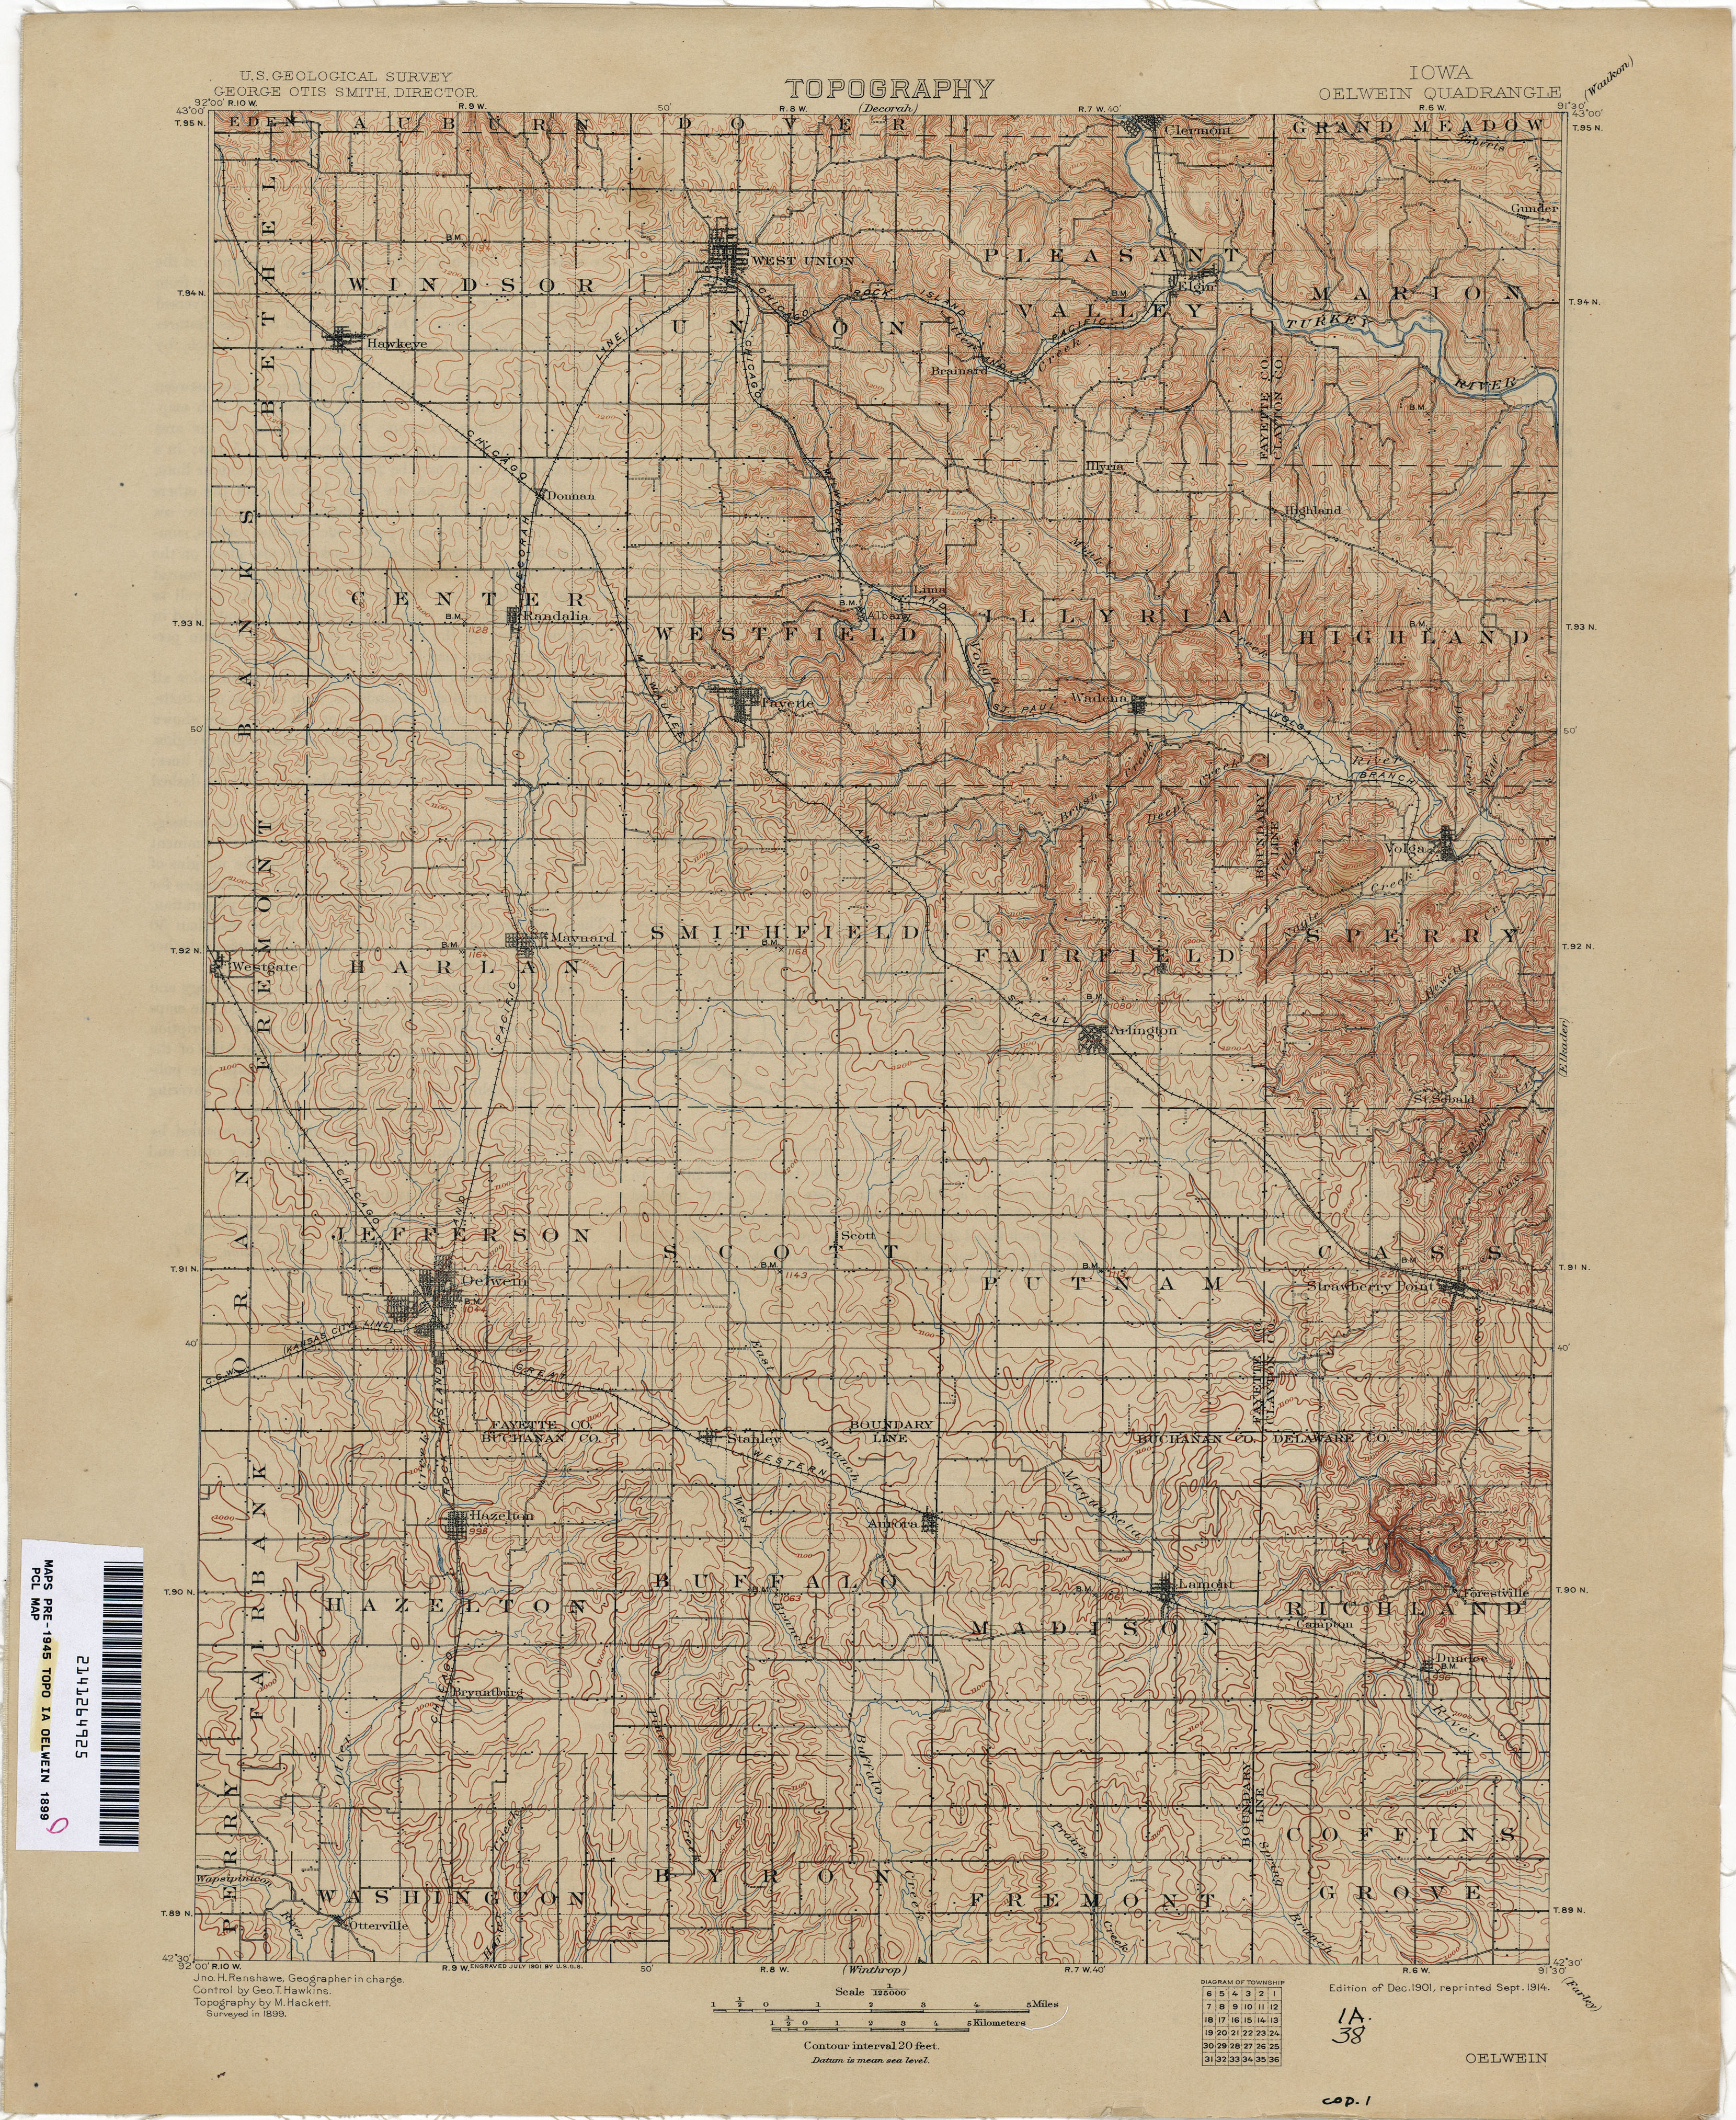 Oelwein Iowa Map.Iowa Historical Topographic Maps Perry Castaneda Map Collection